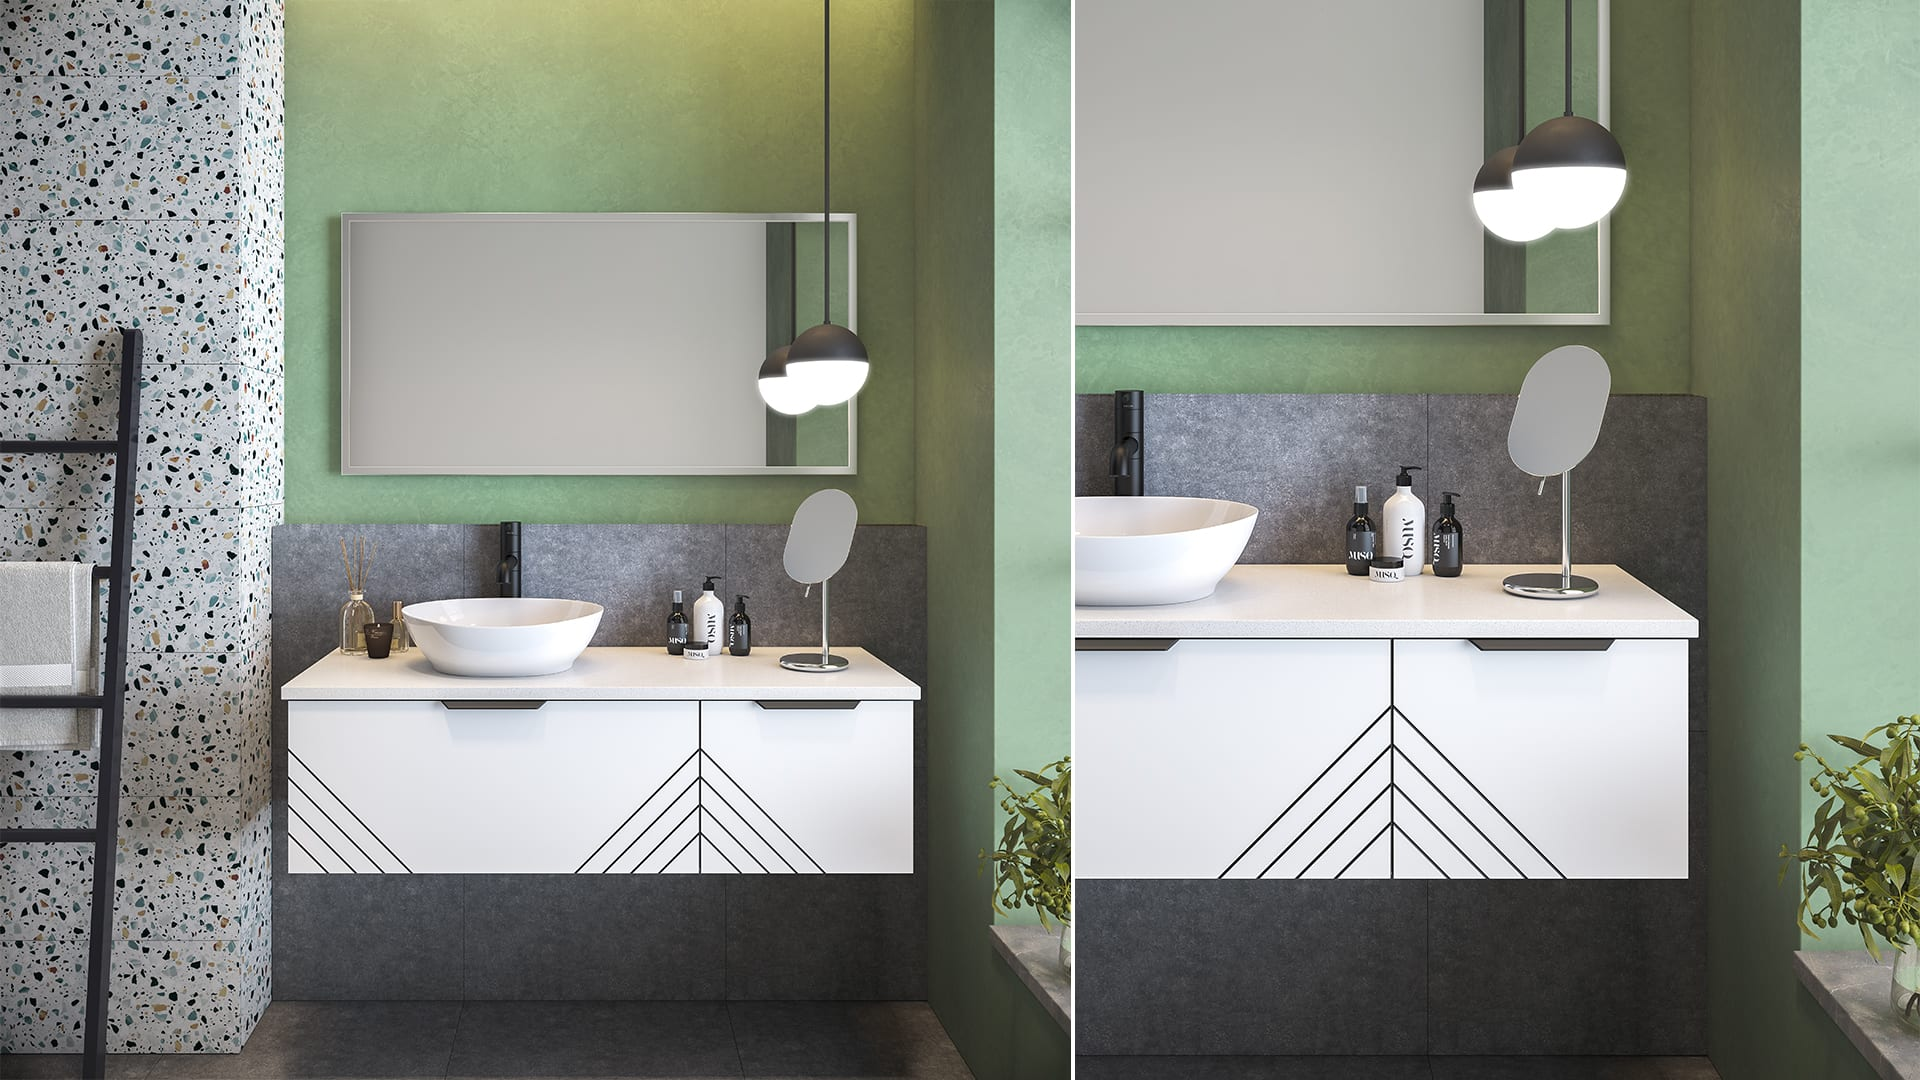 Maayan-Golan_Architectural-Visualization_product-visualization_ Bathroom-cabinets_ company-Ambin-Systems_06